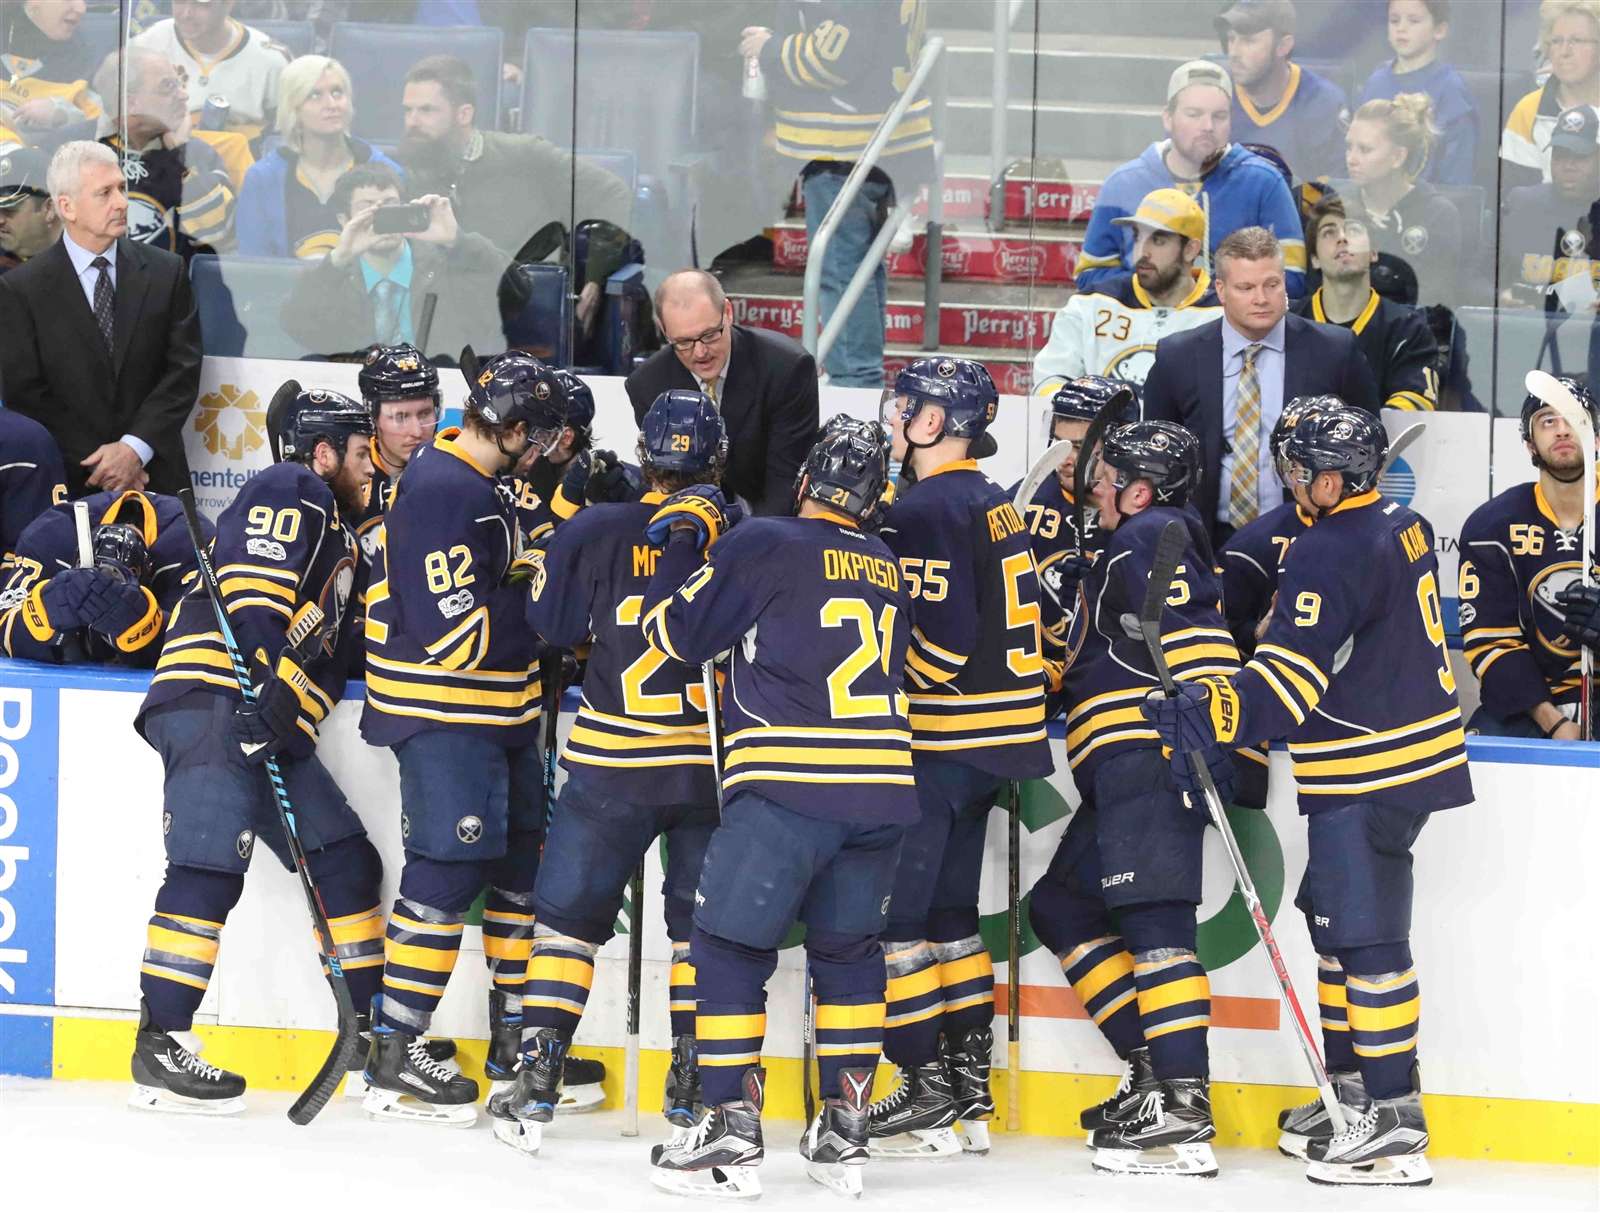 The Sabres are winning as a group, but it helps that their stars led the way Saturday. (James P. McCoy/Buffalo News)